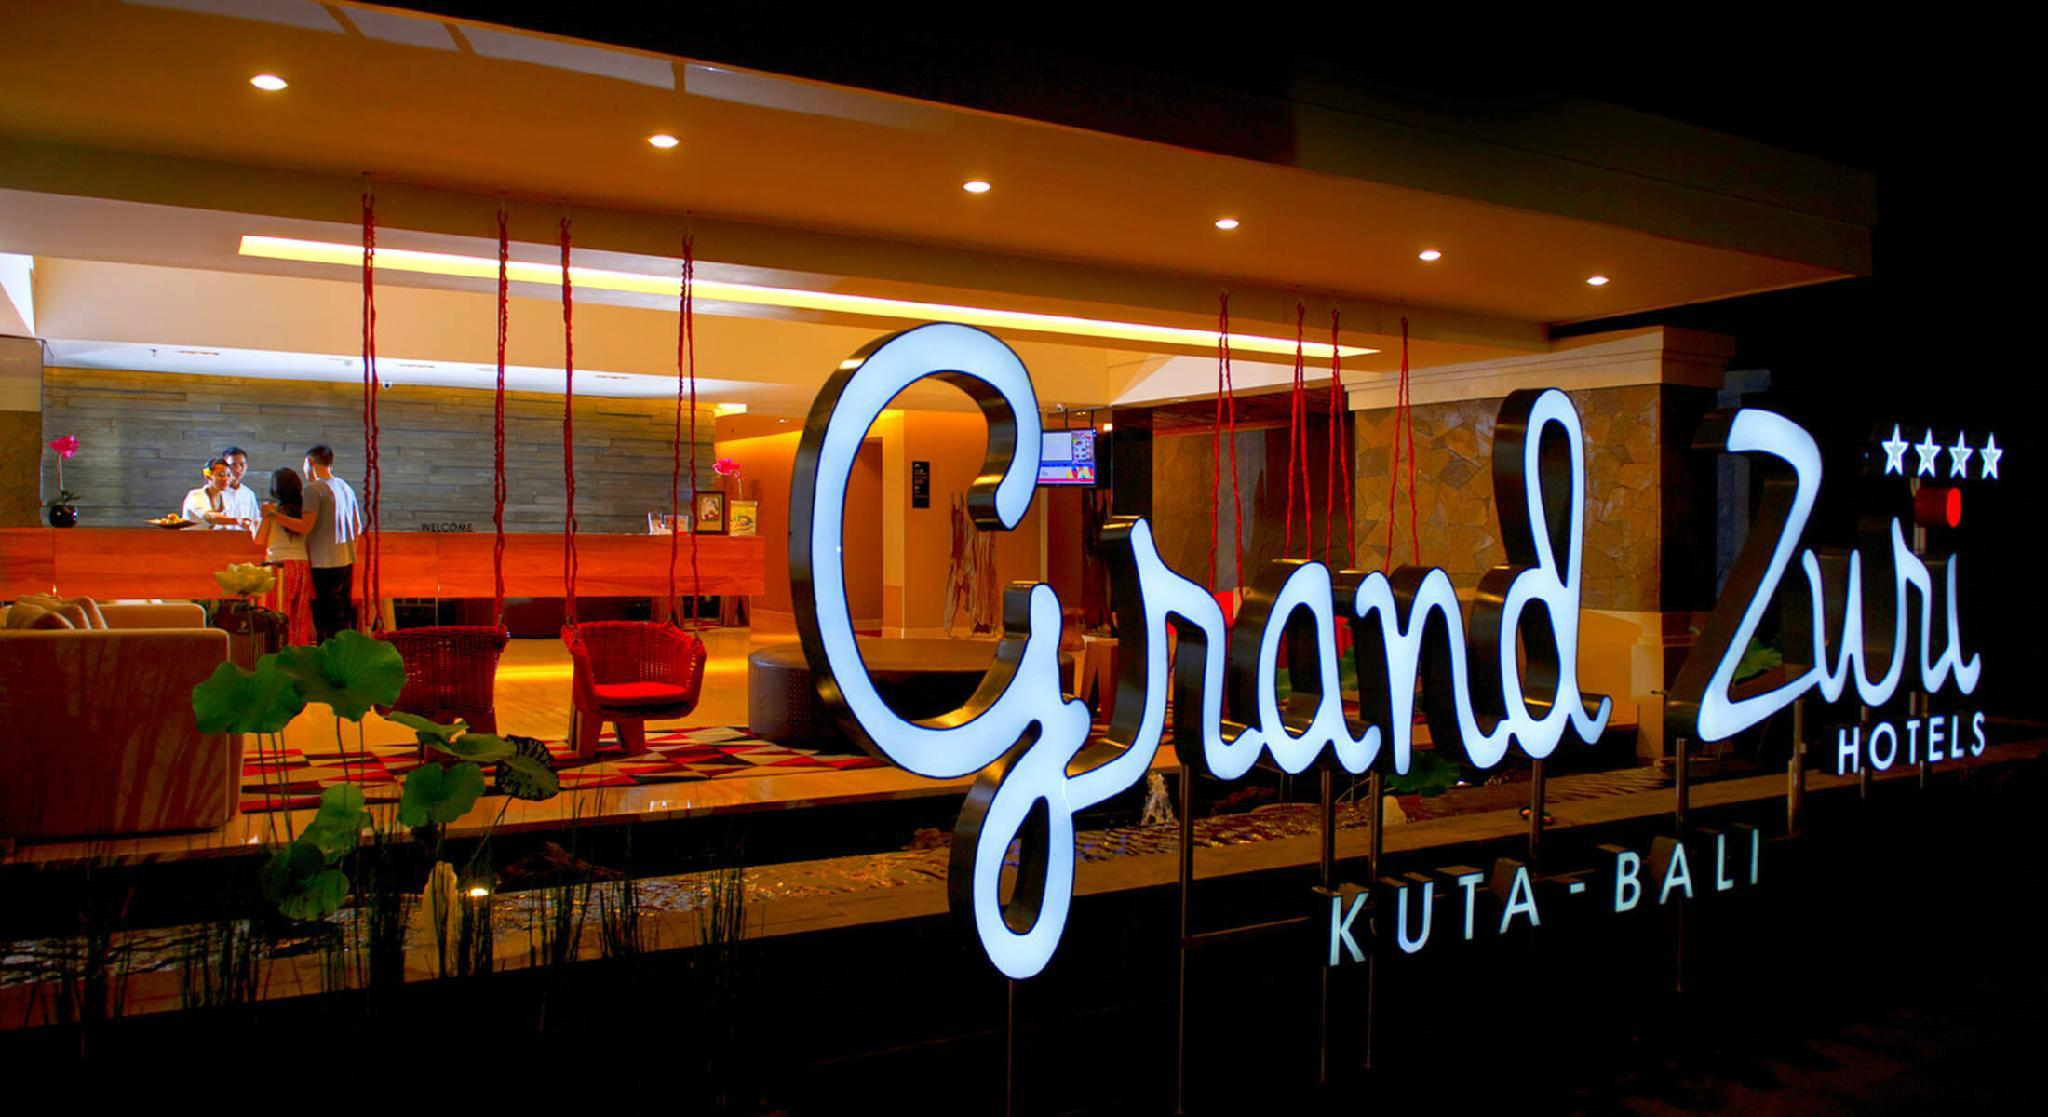 Grand Zuri Kuta Bali Hotel Complete List Of Hotels Villas In Bali